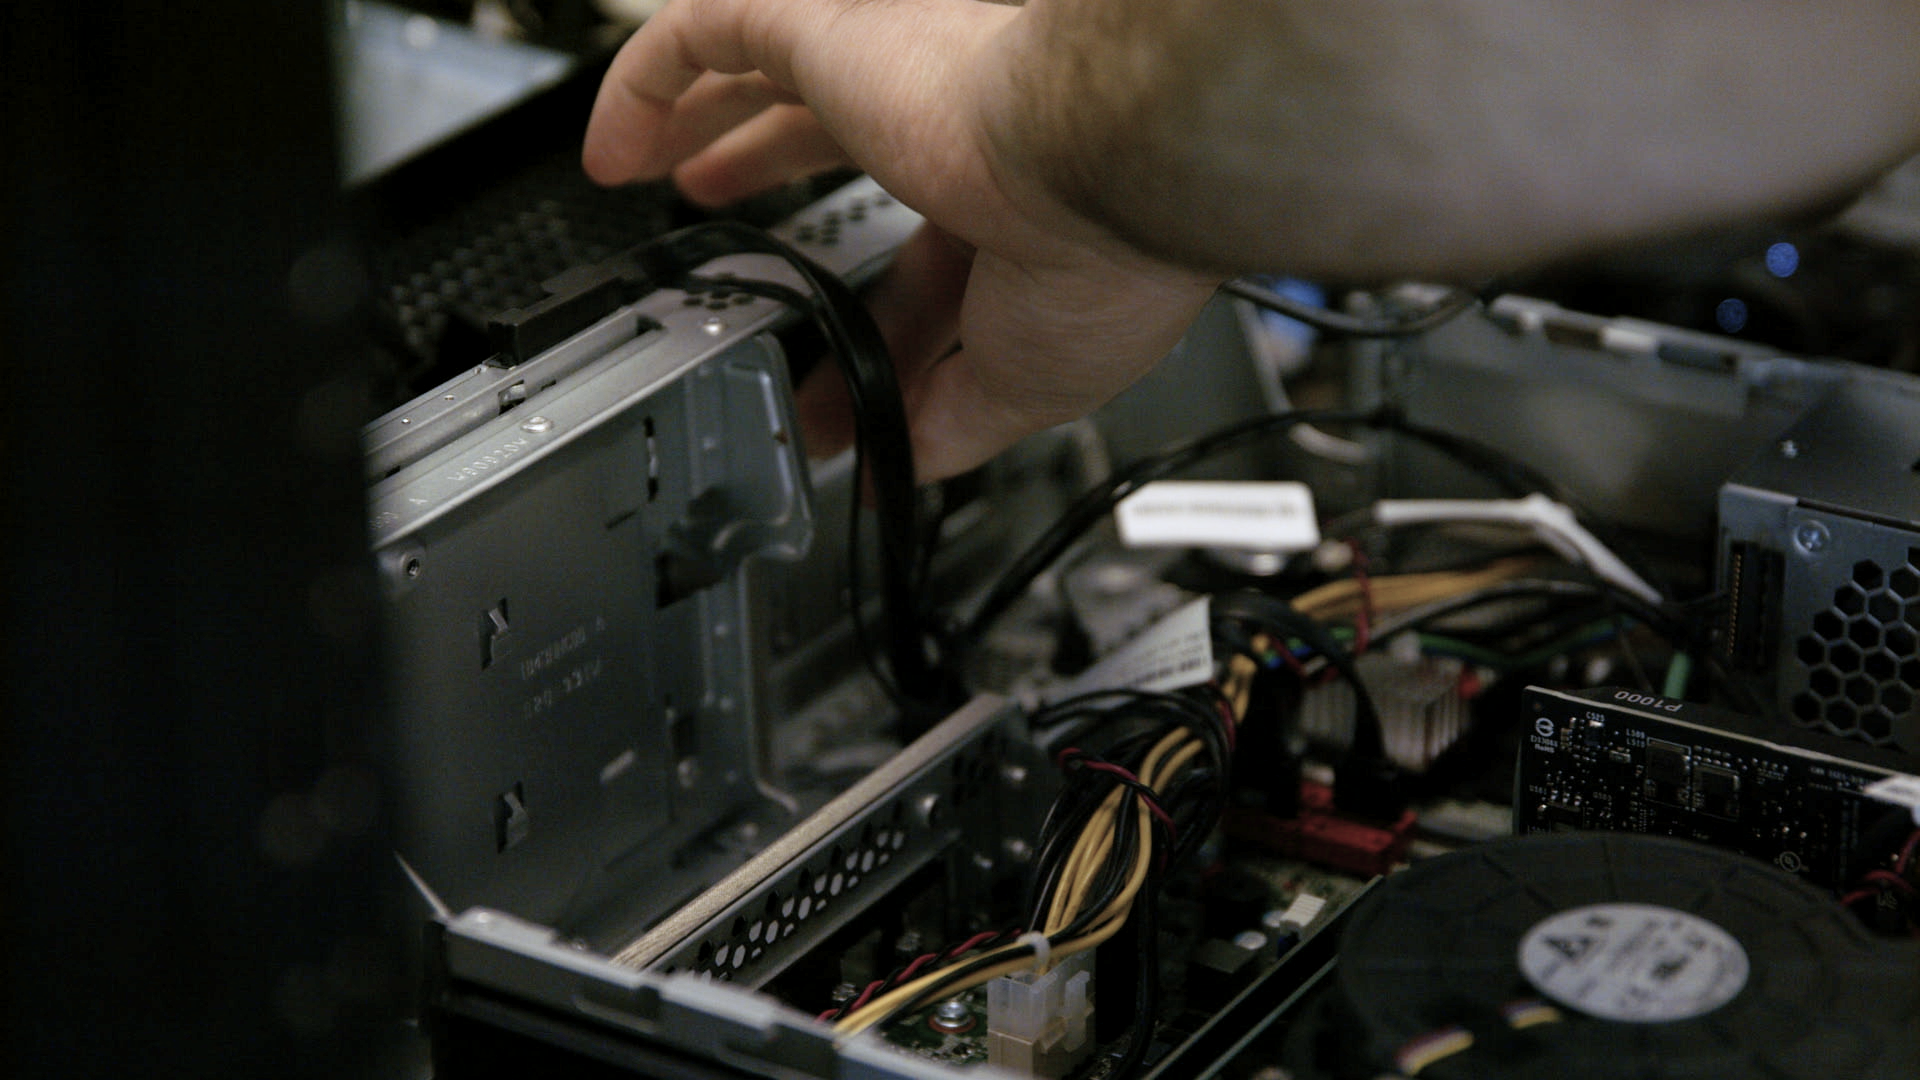 Someone fixing the internal parts of a computer